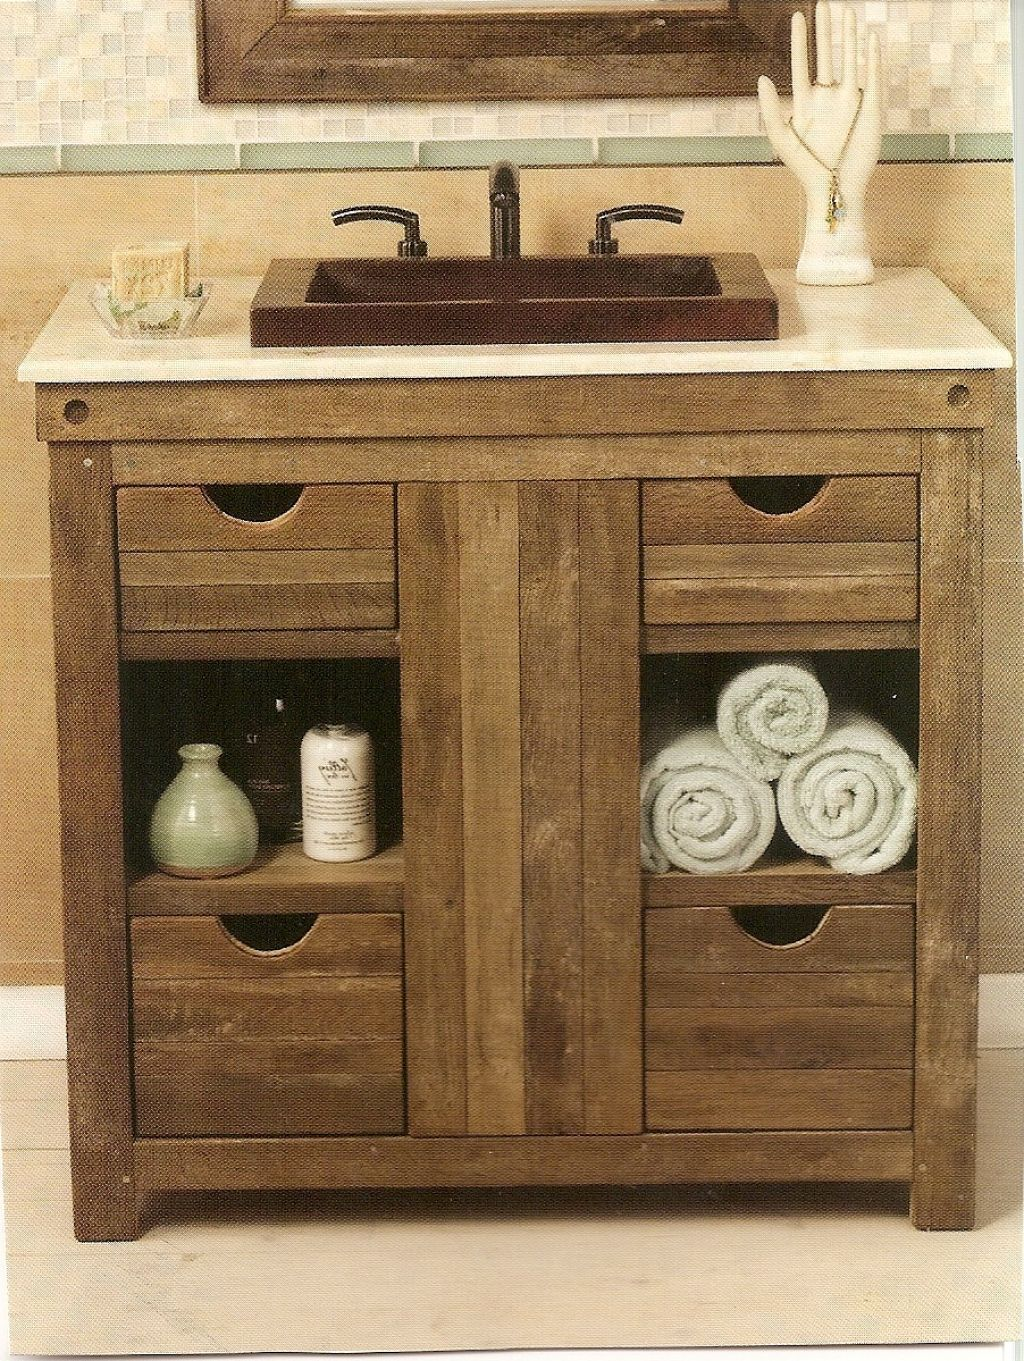 25 Rustic Bathroom Vanities To Make Your Bathroom Look Gorgeous Magment Rustic Bathroom Vanities Rustic Bathroom Designs Small Bathroom Vanities